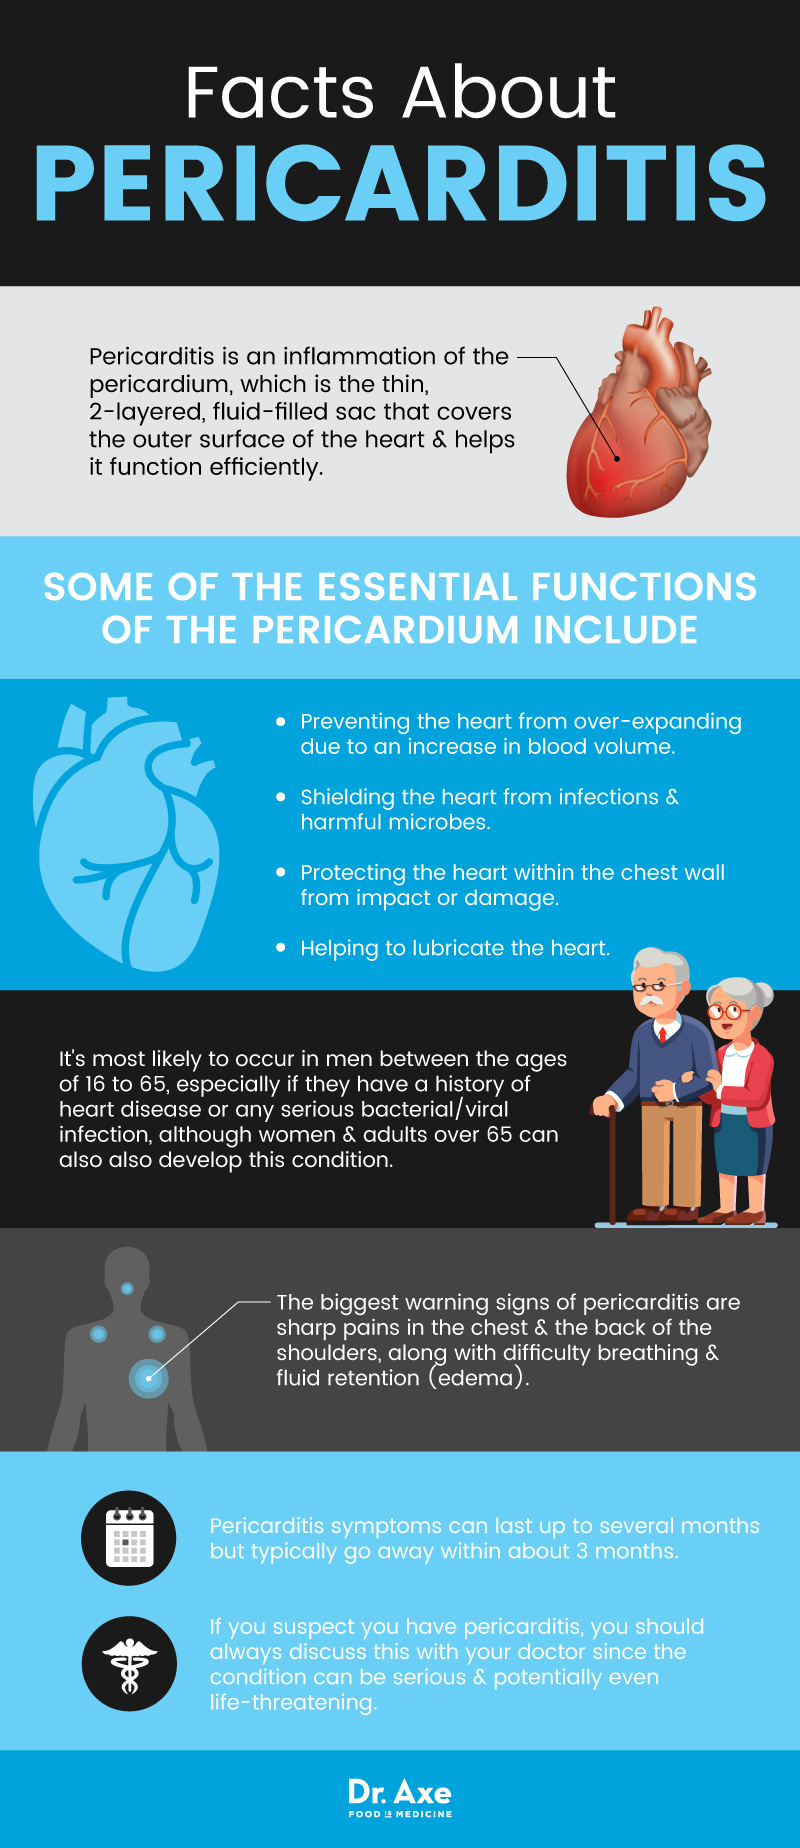 Facts about pericarditis - Dr. Axe